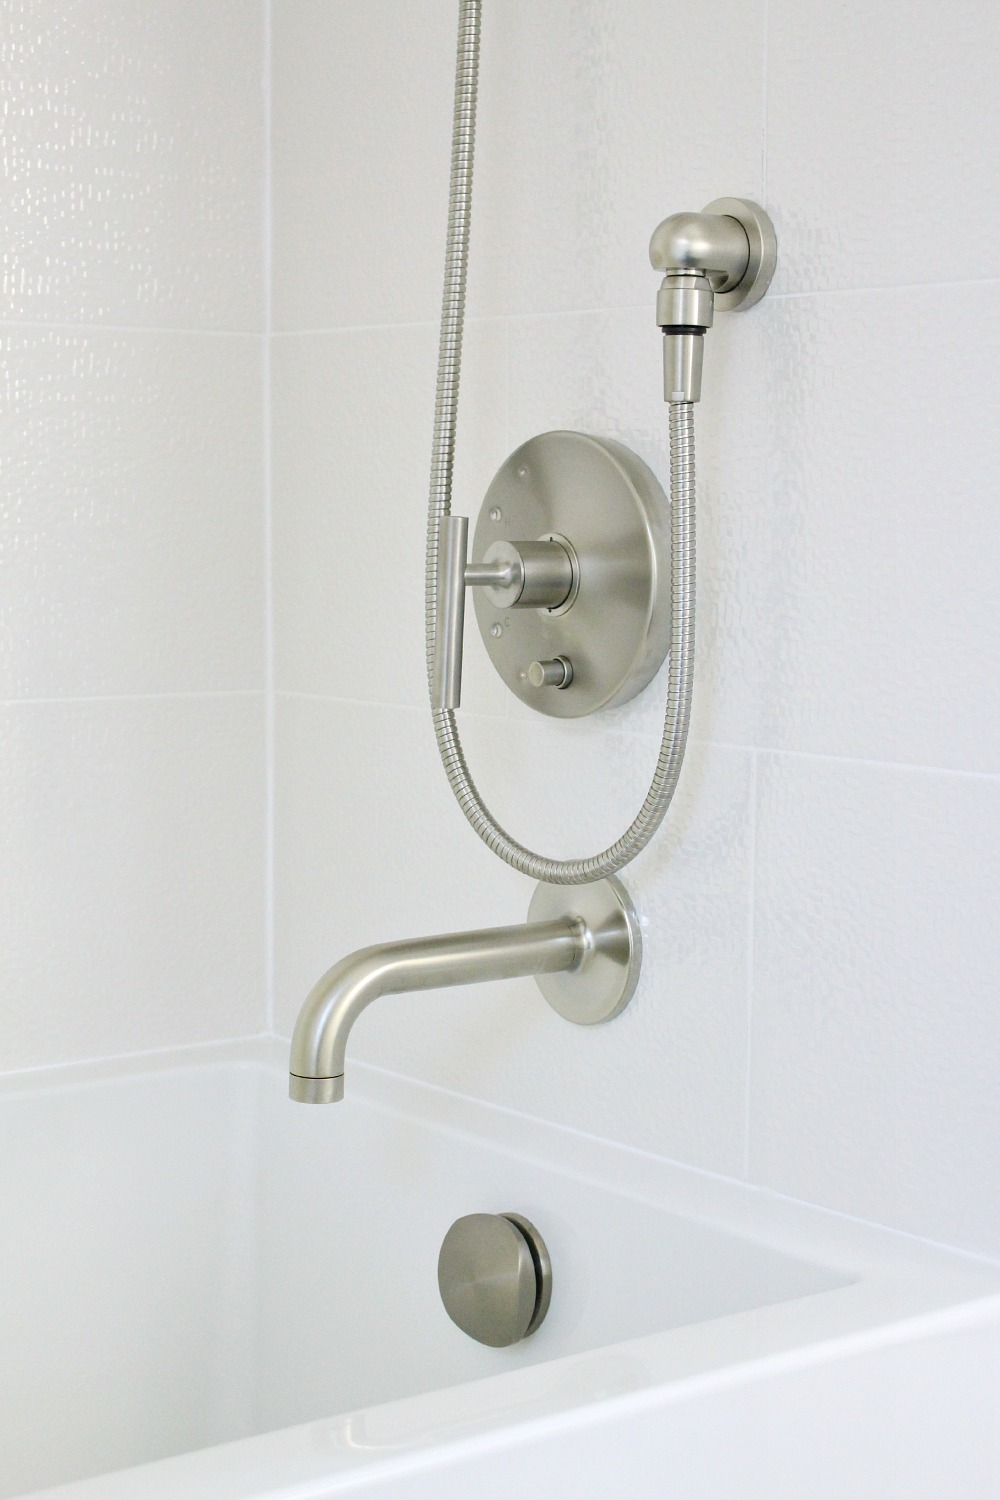 Kohler Purist Vibrant Brushed Nickel